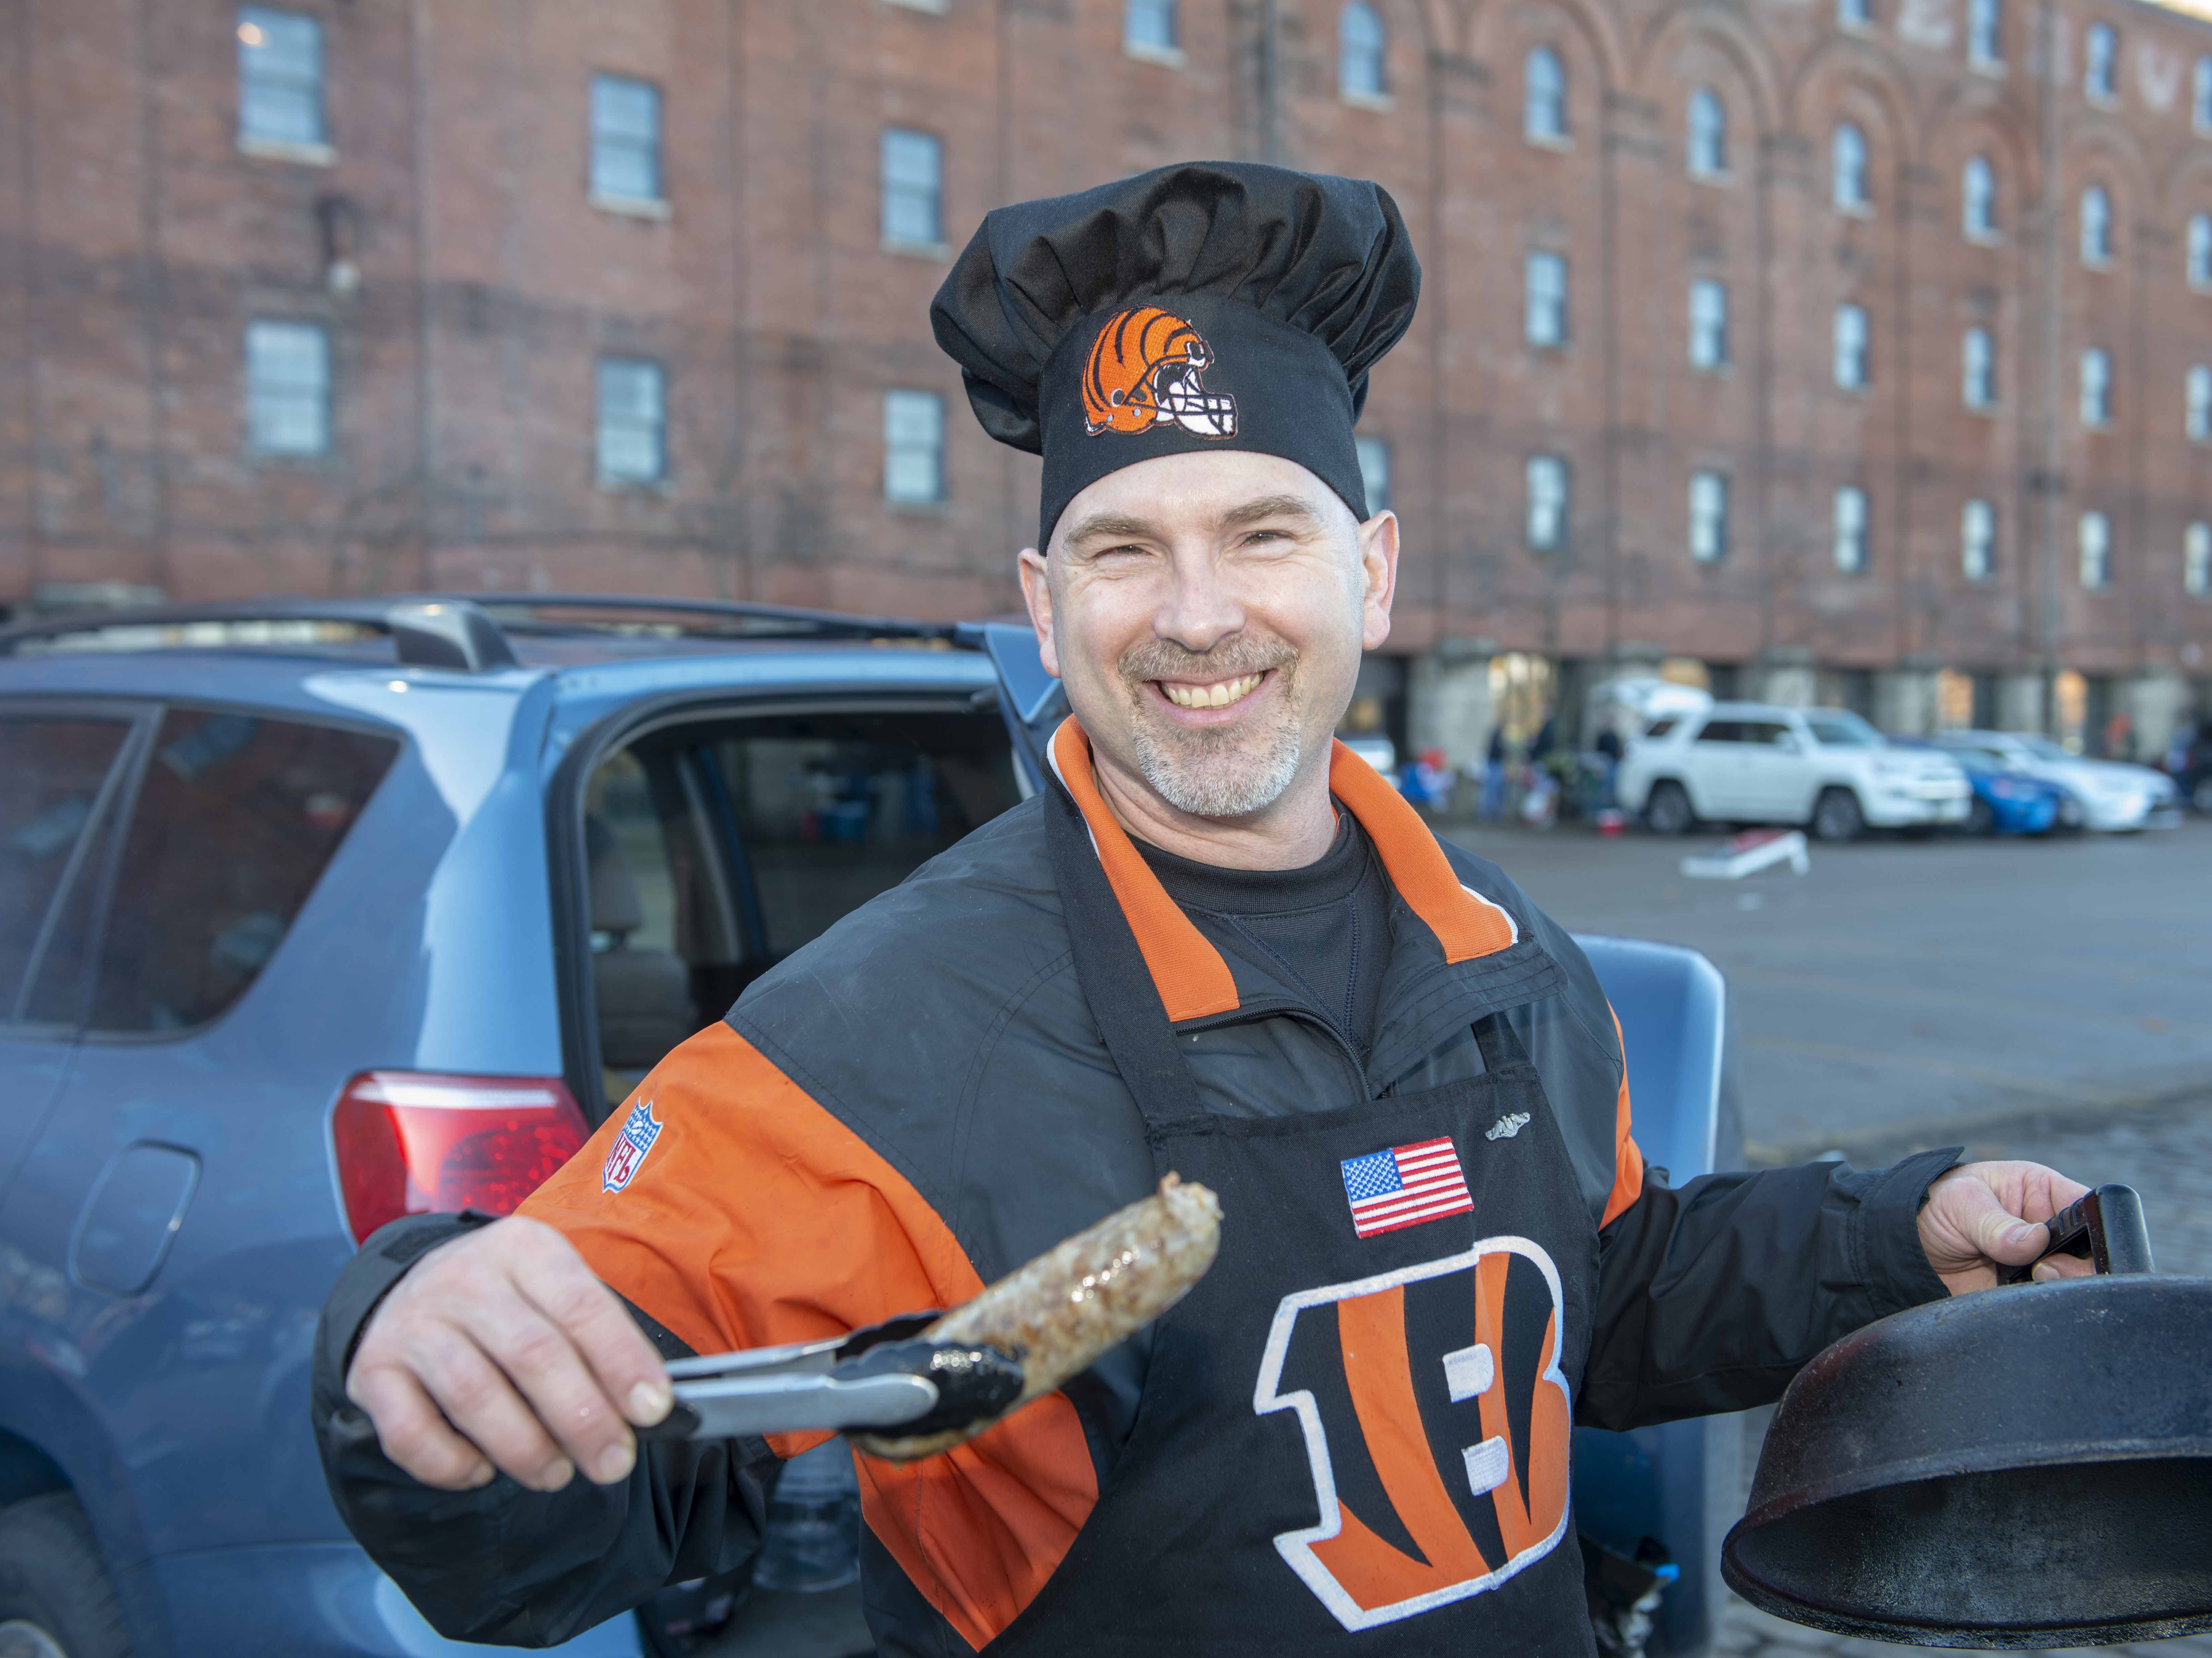 Cincinnati Bengals fans showed up for tailgating parties as the Cincinnati Bengals hosted the Denver Broncos at Paul Brown Stadium Sunday, December 2, 2018. Ken Adams of West Price Hill grills up some Italian sausages.